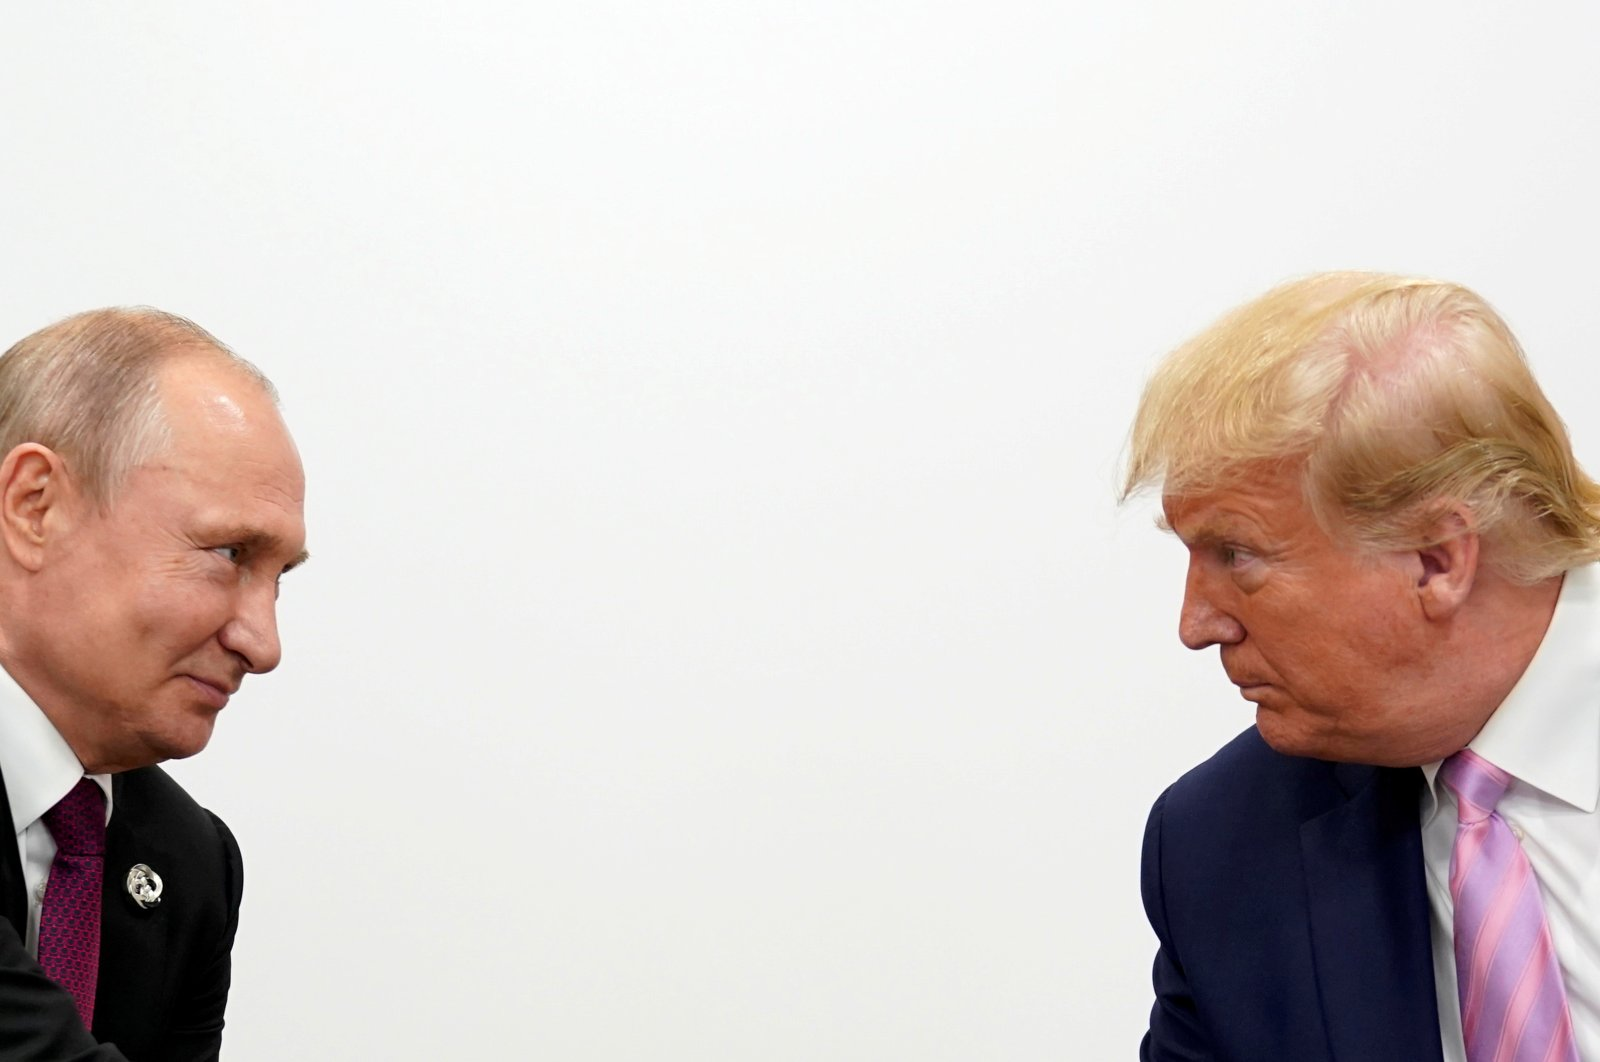 Russian President Vladimir Putin (L) and U.S. President Donald Trump hold a bilateral meeting at the G-20 leaders' summit in Osaka, Japan, June 28, 2019. (Reuters Photo)